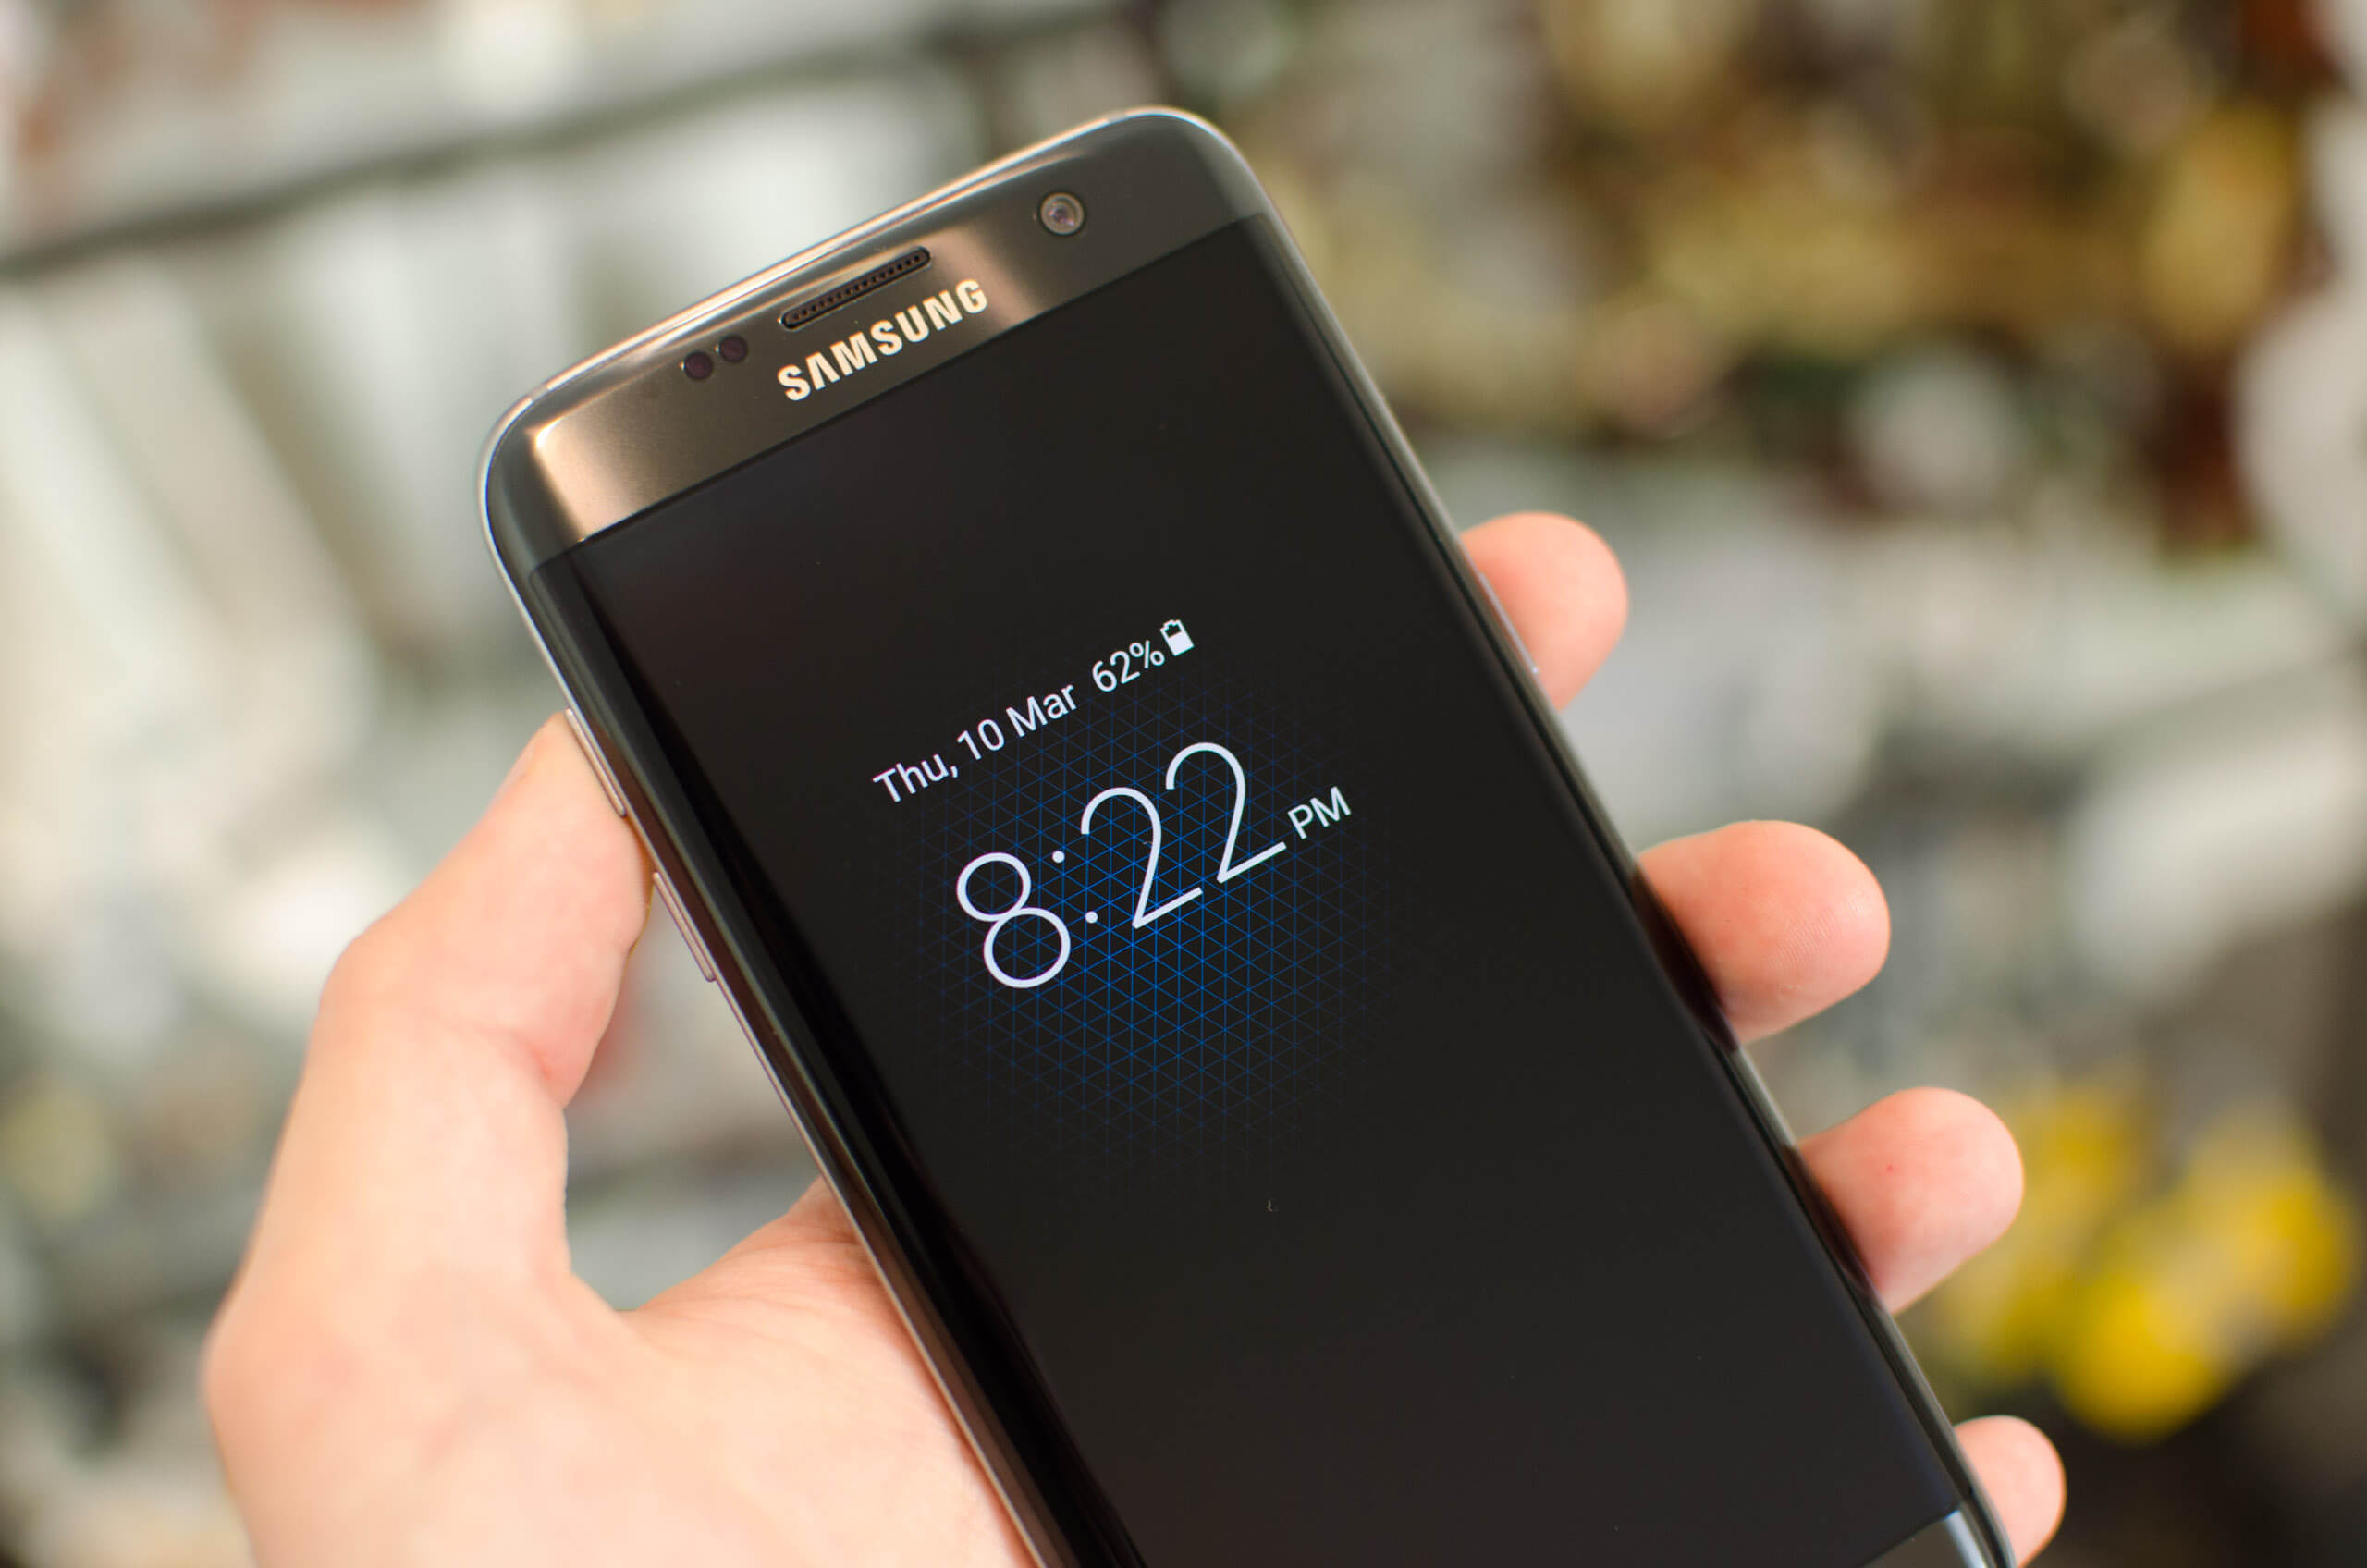 android, samsung, smartphone, amoled, display, battery life, tested, galaxy s7, galaxy s7 edge, always on display